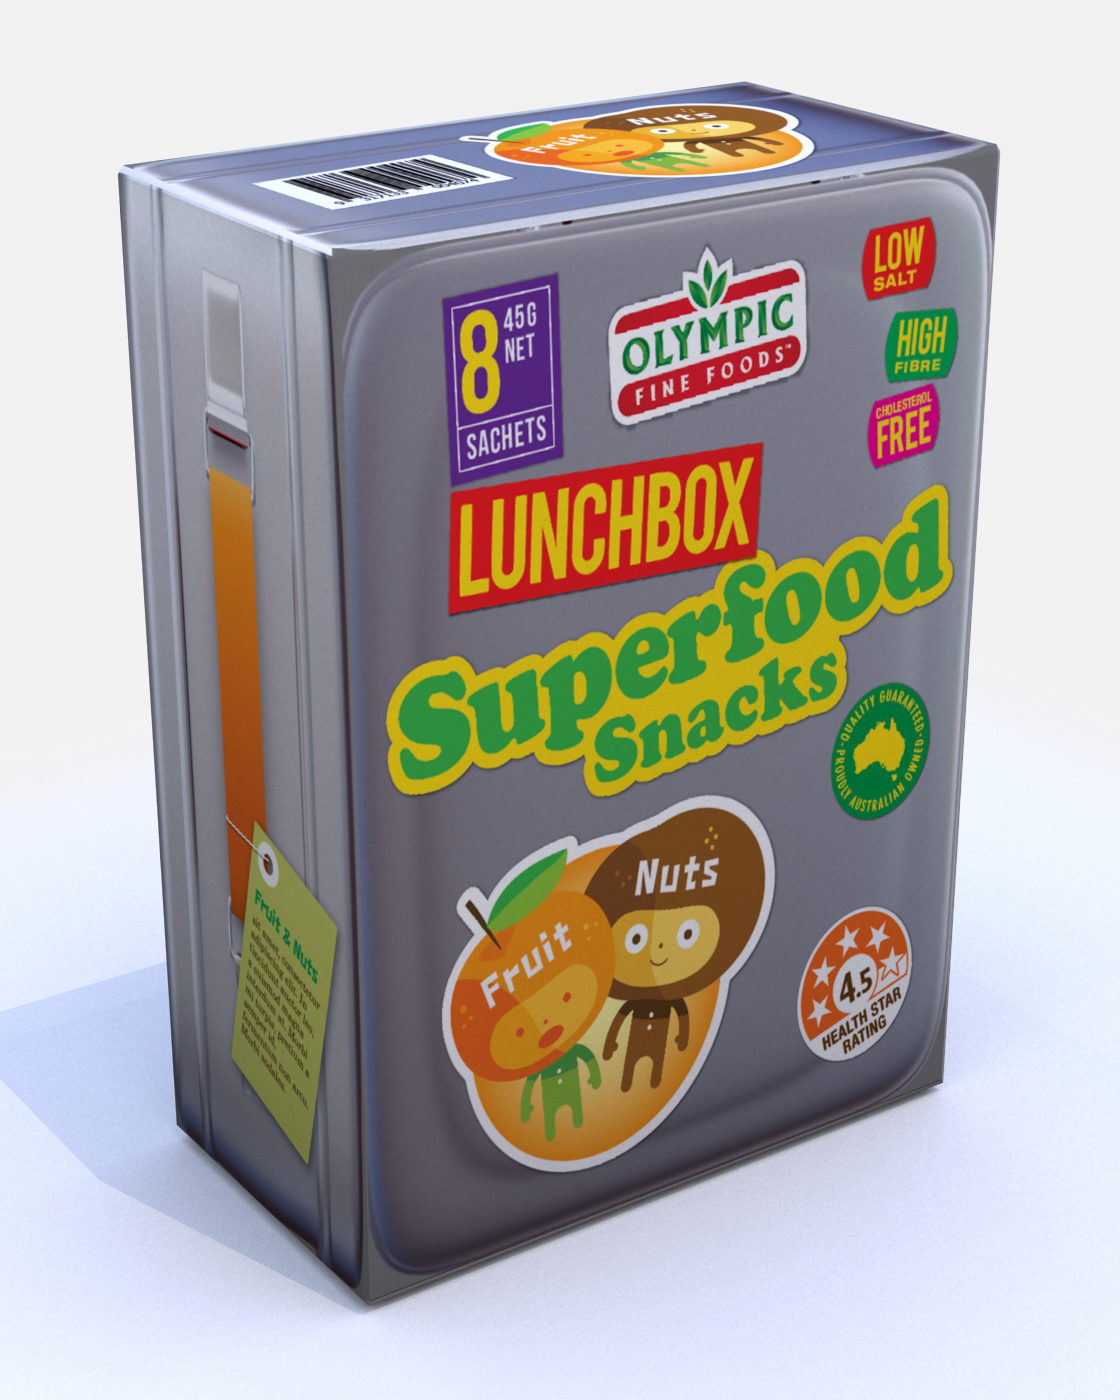 Lunchbox Superfoods – Fruit & Nut